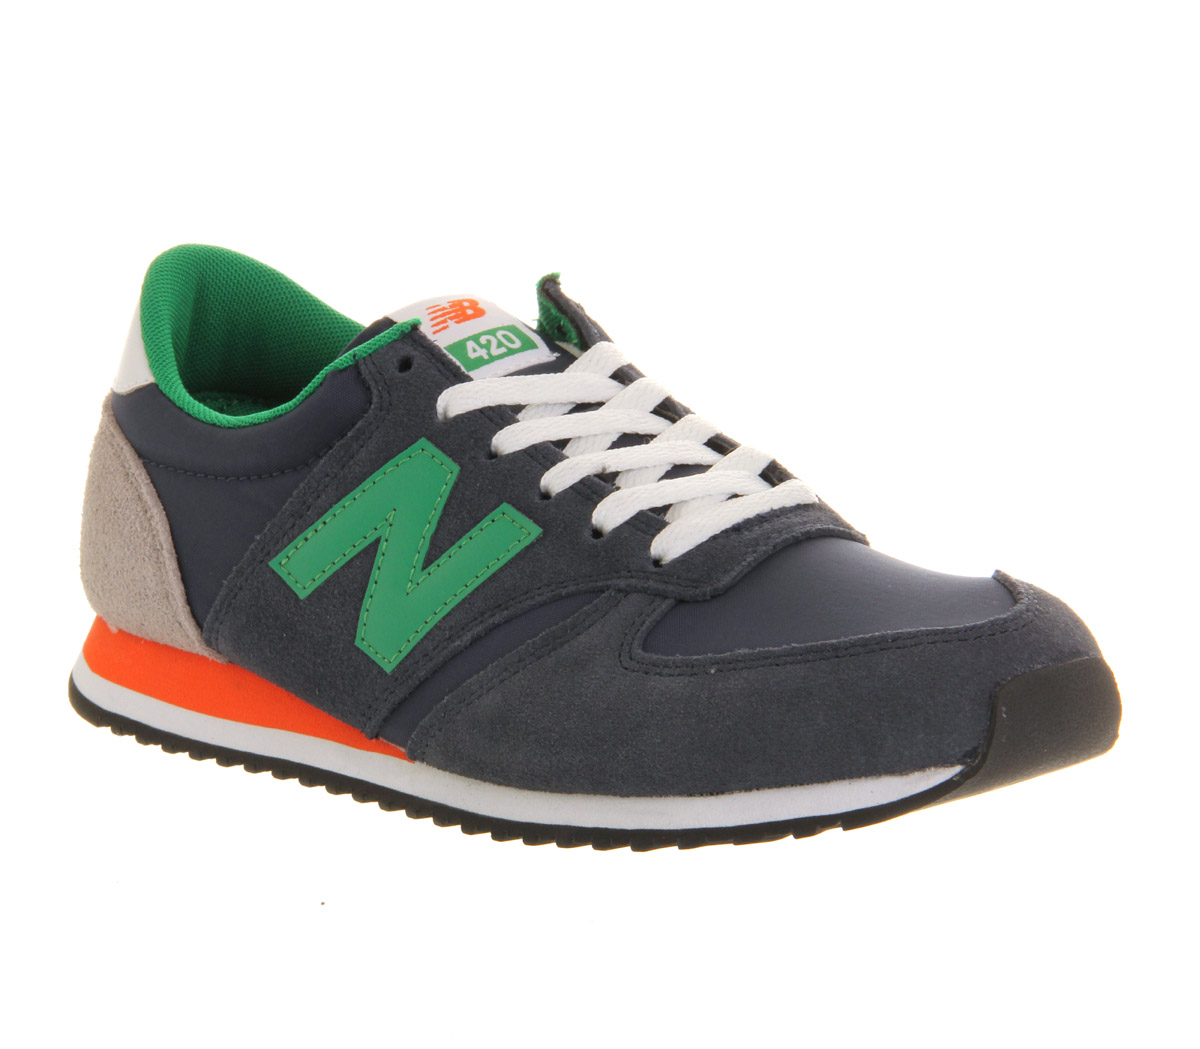 new balance u420 navy green orange trainers shoes ebay. Black Bedroom Furniture Sets. Home Design Ideas